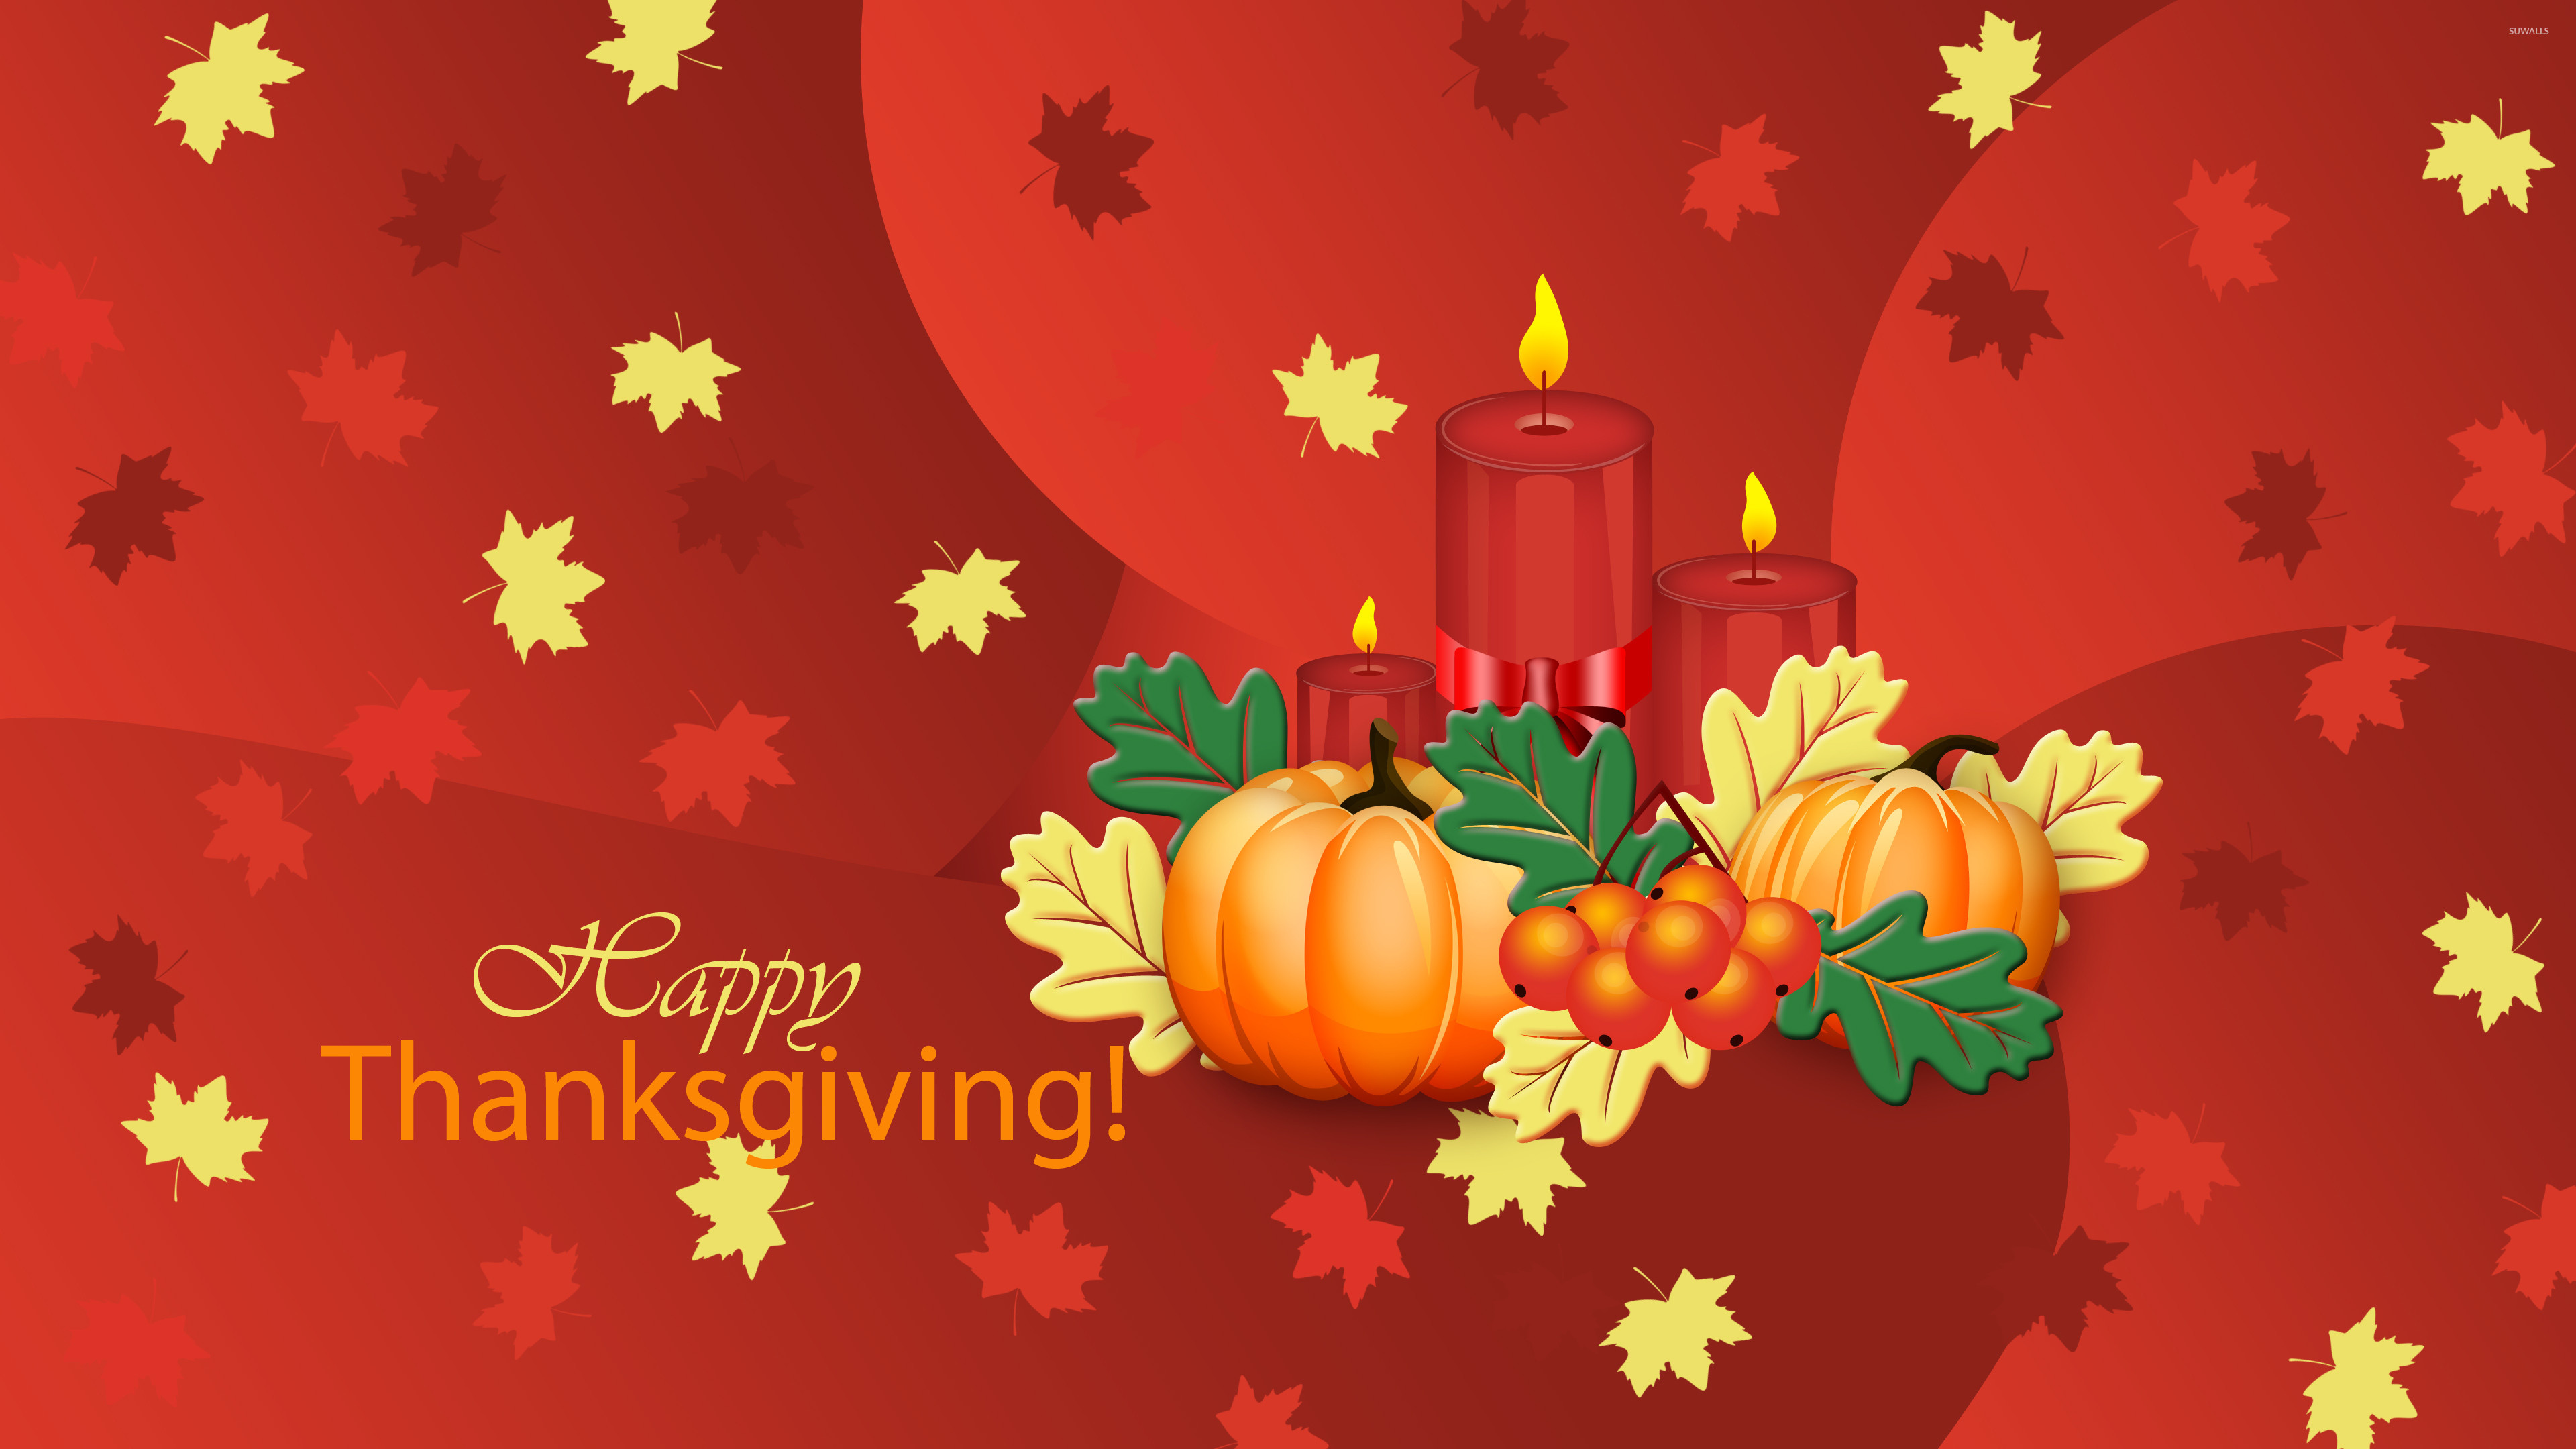 3840x2160 Pumpkins and candles on Thanksgiving wallpaper  jpg